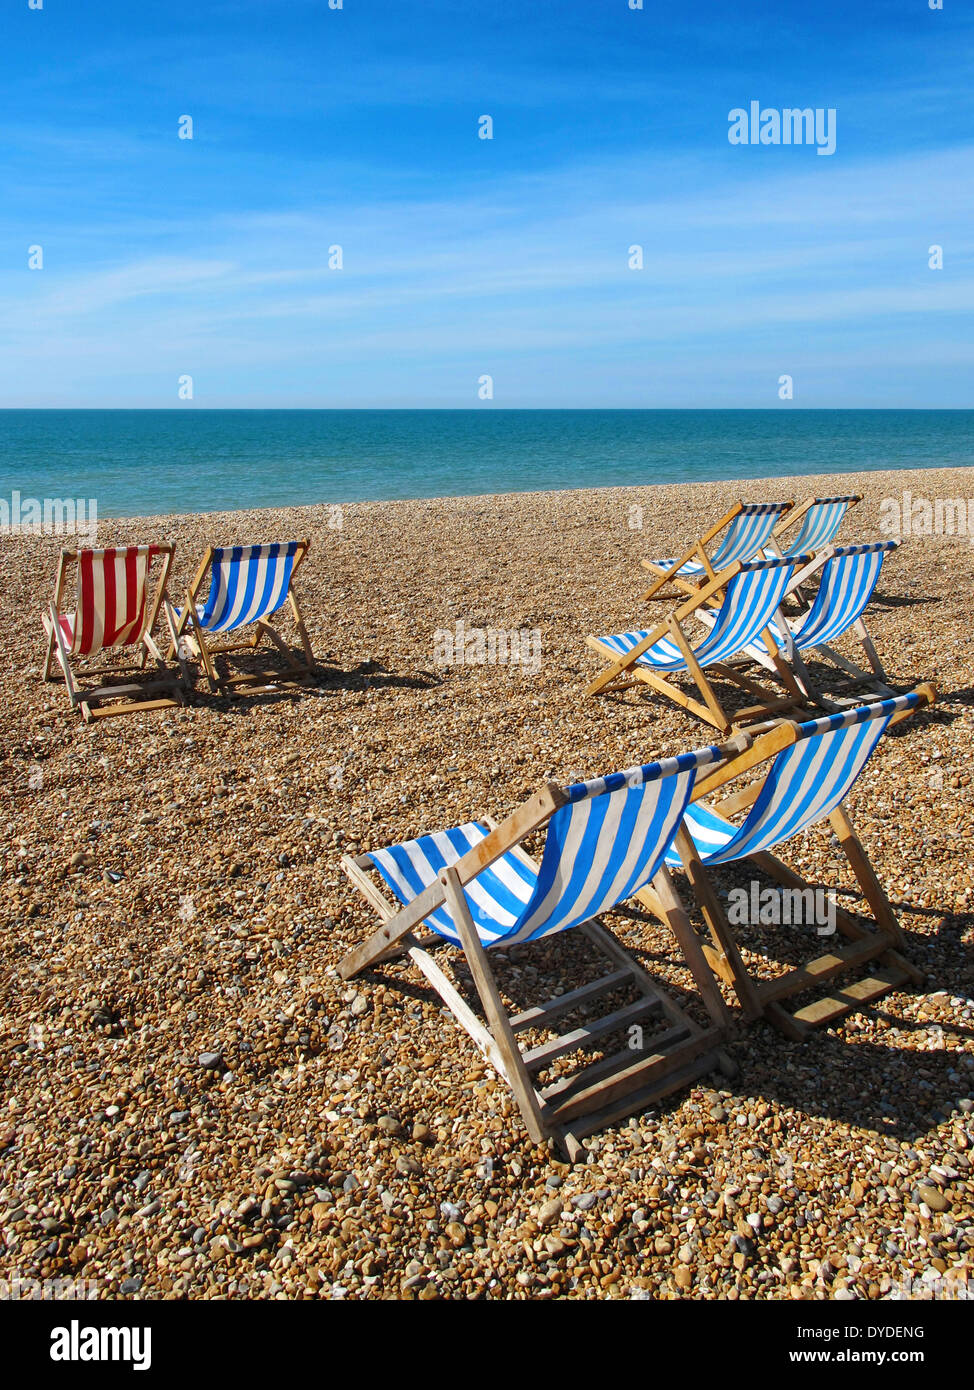 Deck chairs on Brighton beach. - Stock Image